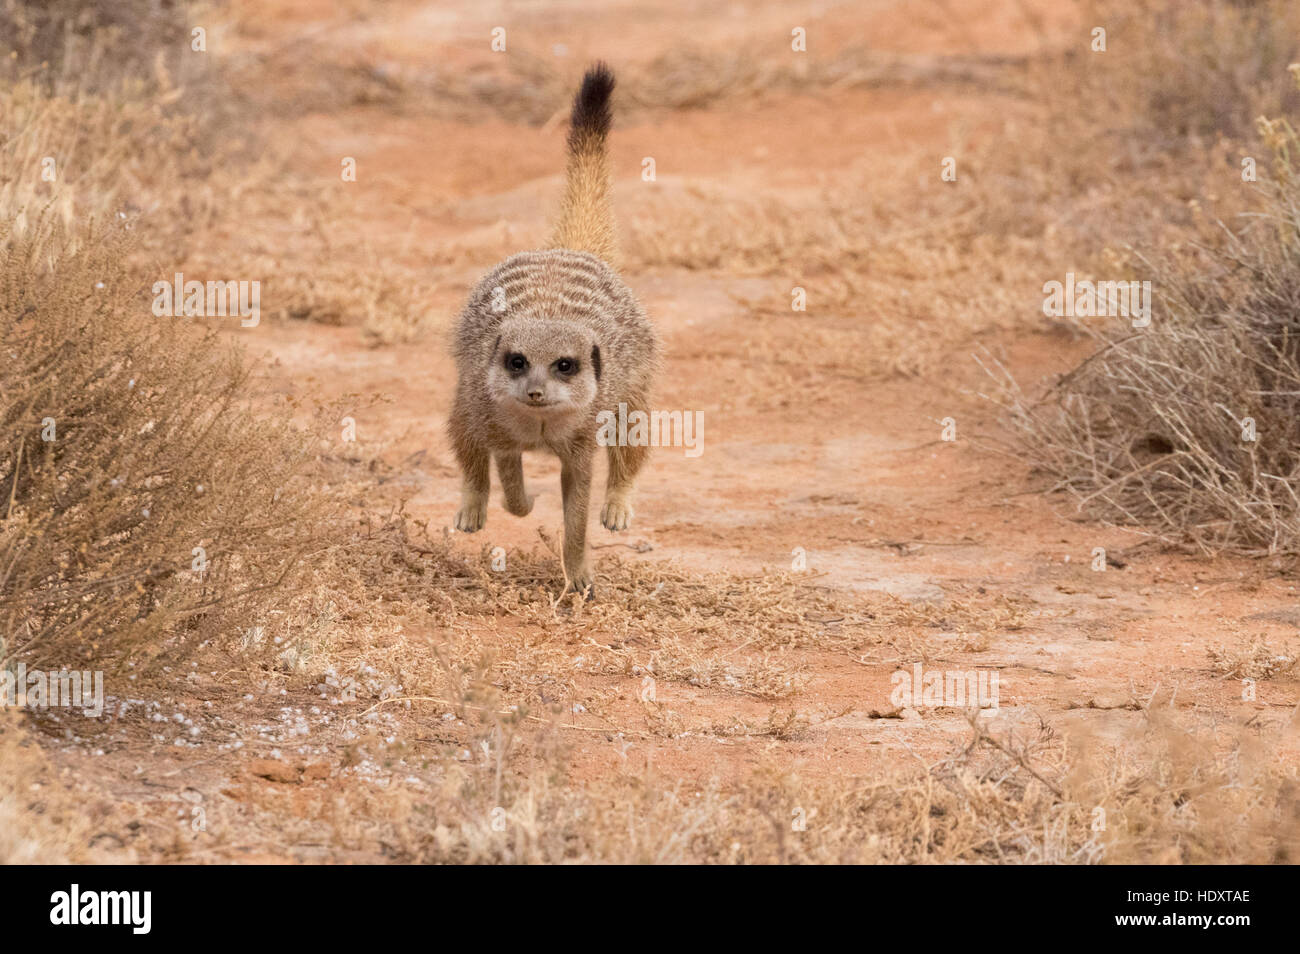 Wild adult Meerkat ( Suricata suricatta ) running, the Karoo, South Africa - Stock Image